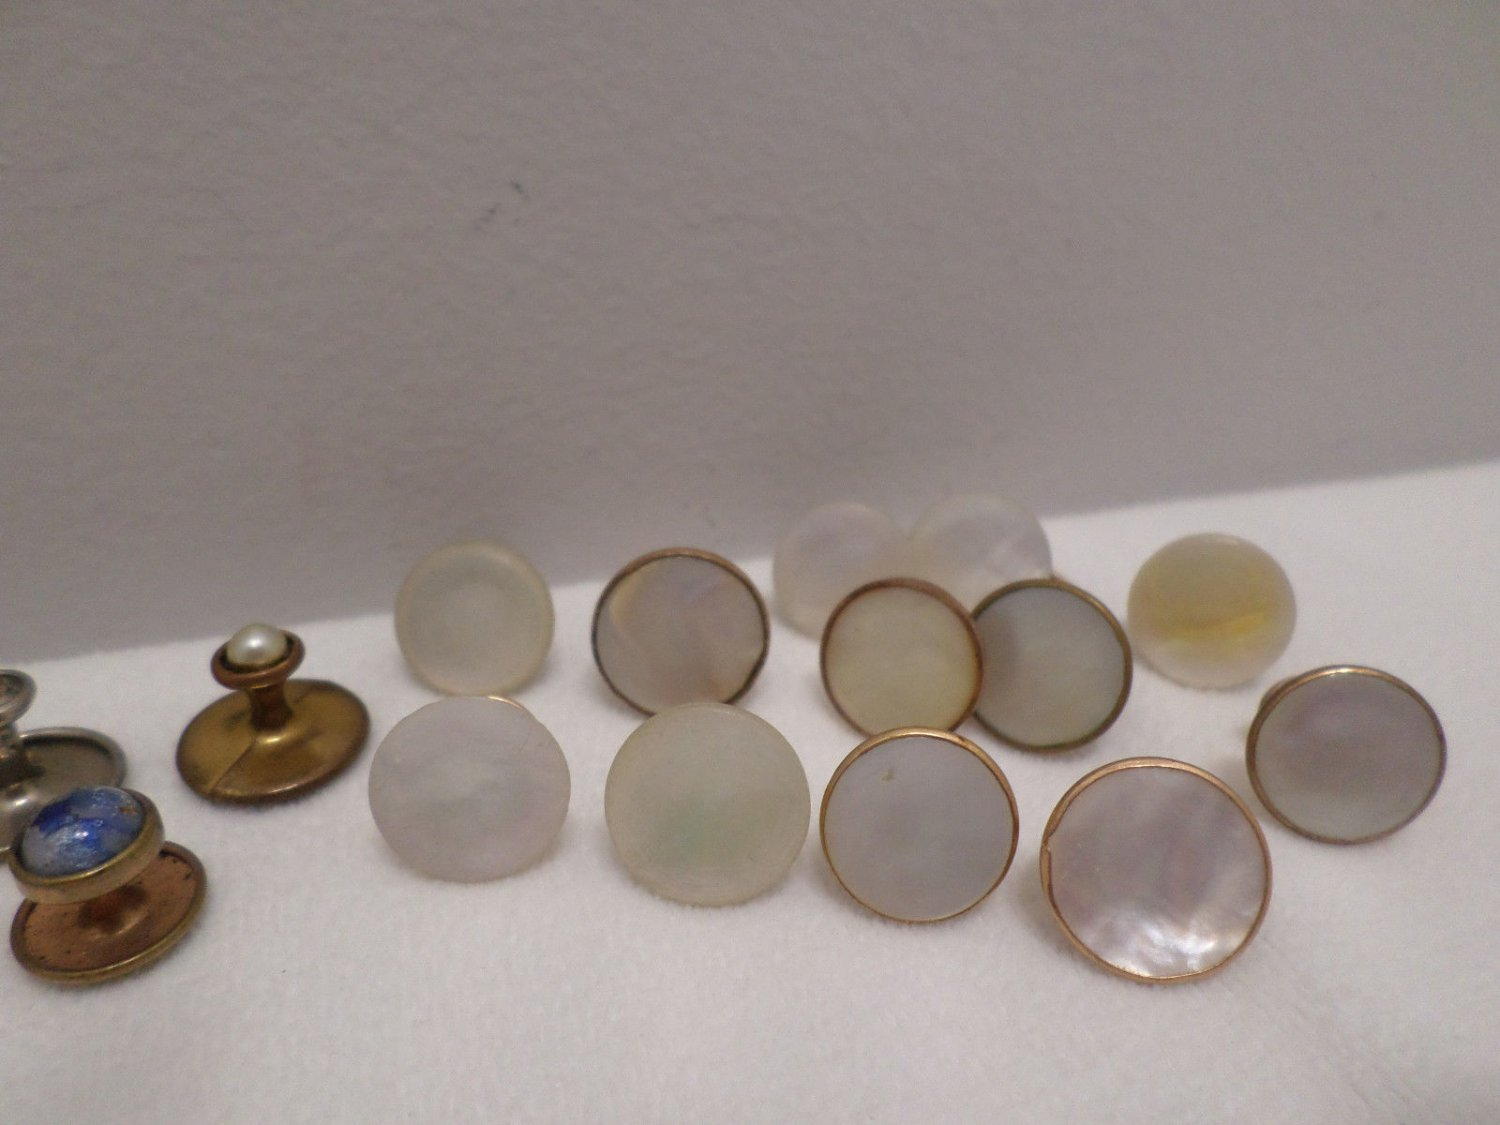 Antique Men's Shirt Buttons Gold Tone Metal with Mother of Pearl and other stone